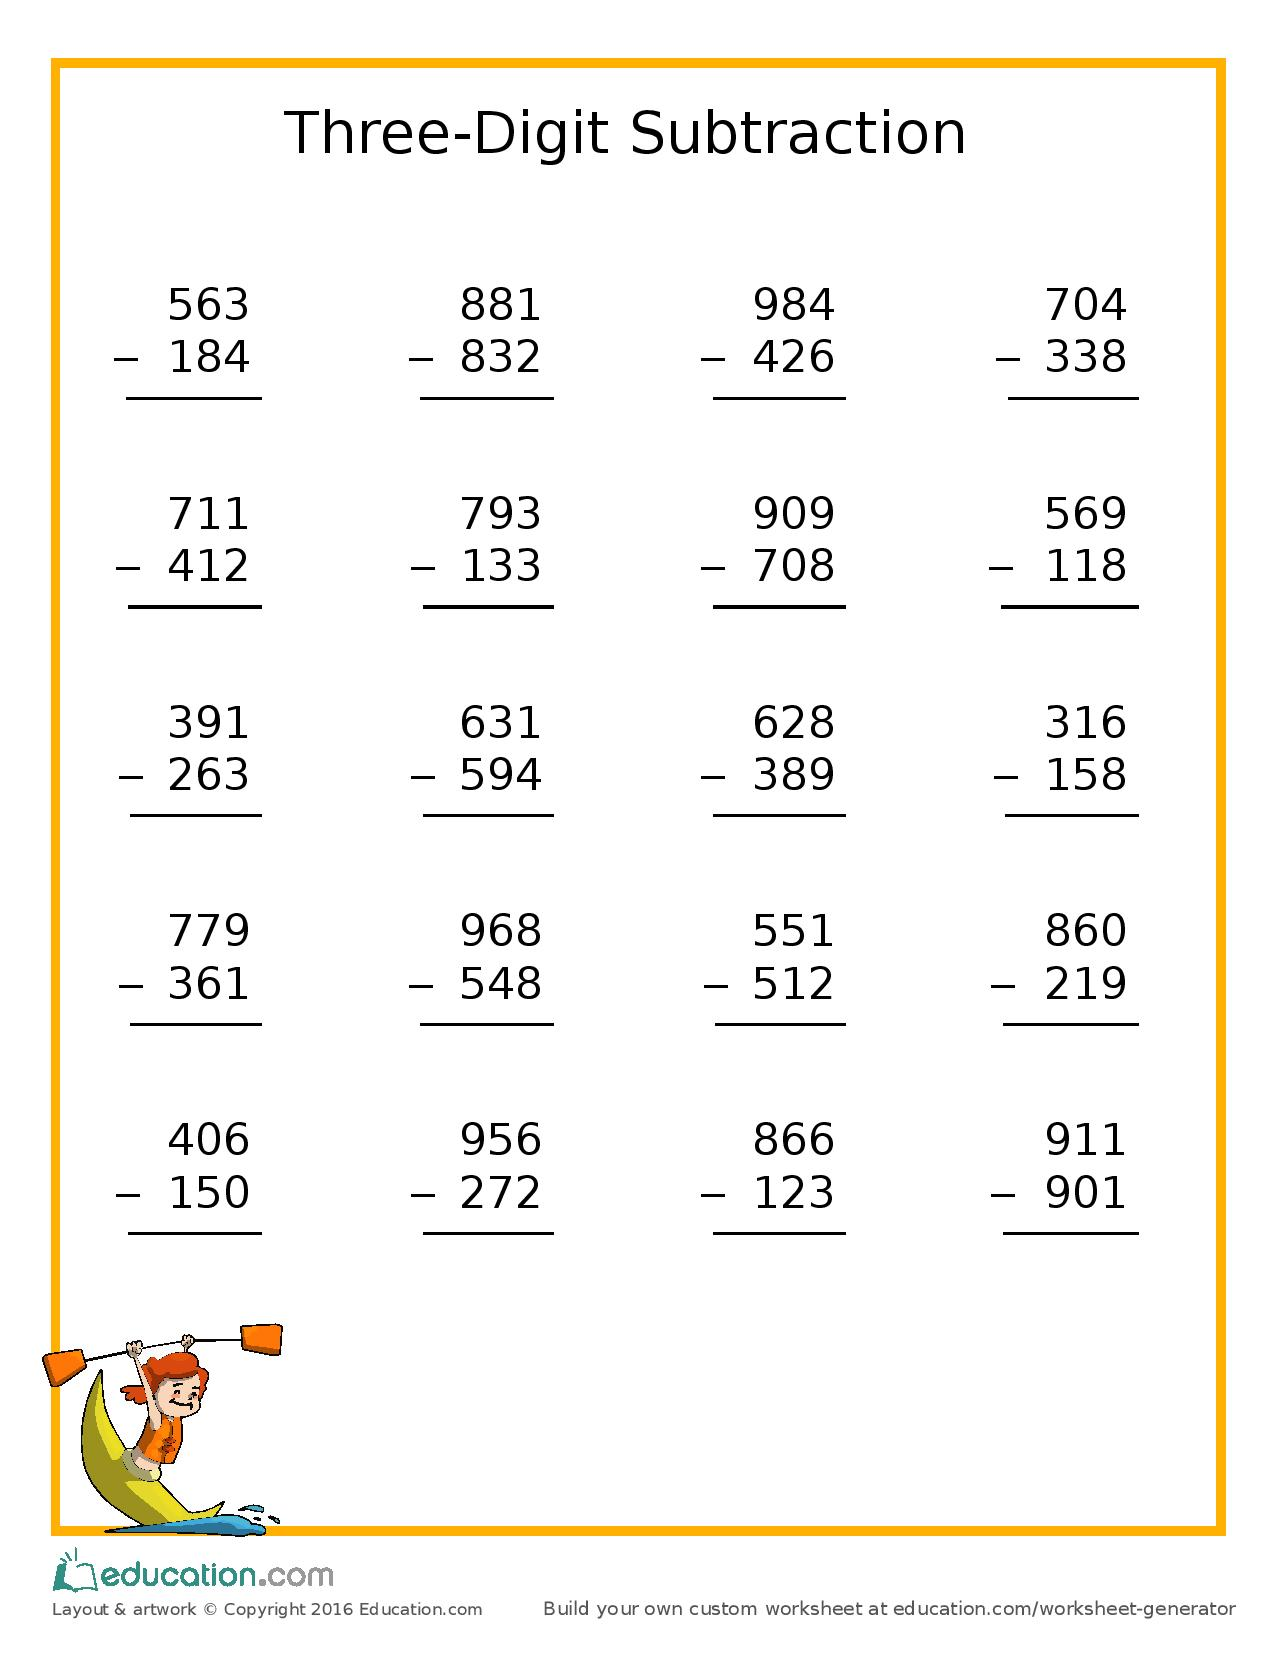 Free Worksheet From Education Three Digit Subtraction